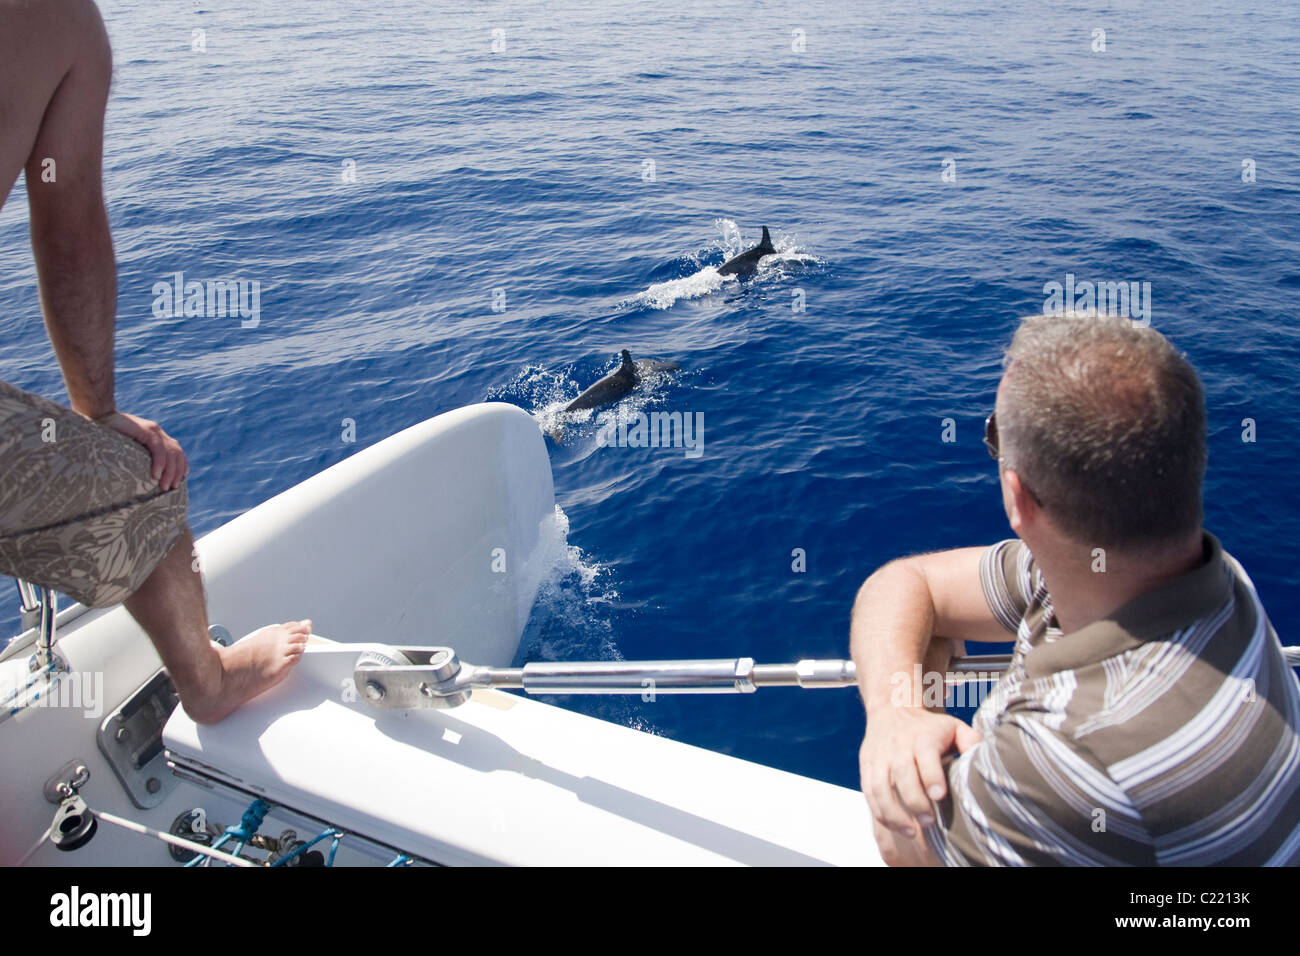 People watching dolphins surface in front of a catamaran off Funchal, Madeira, during a dolphin watching excursion. - Stock Image